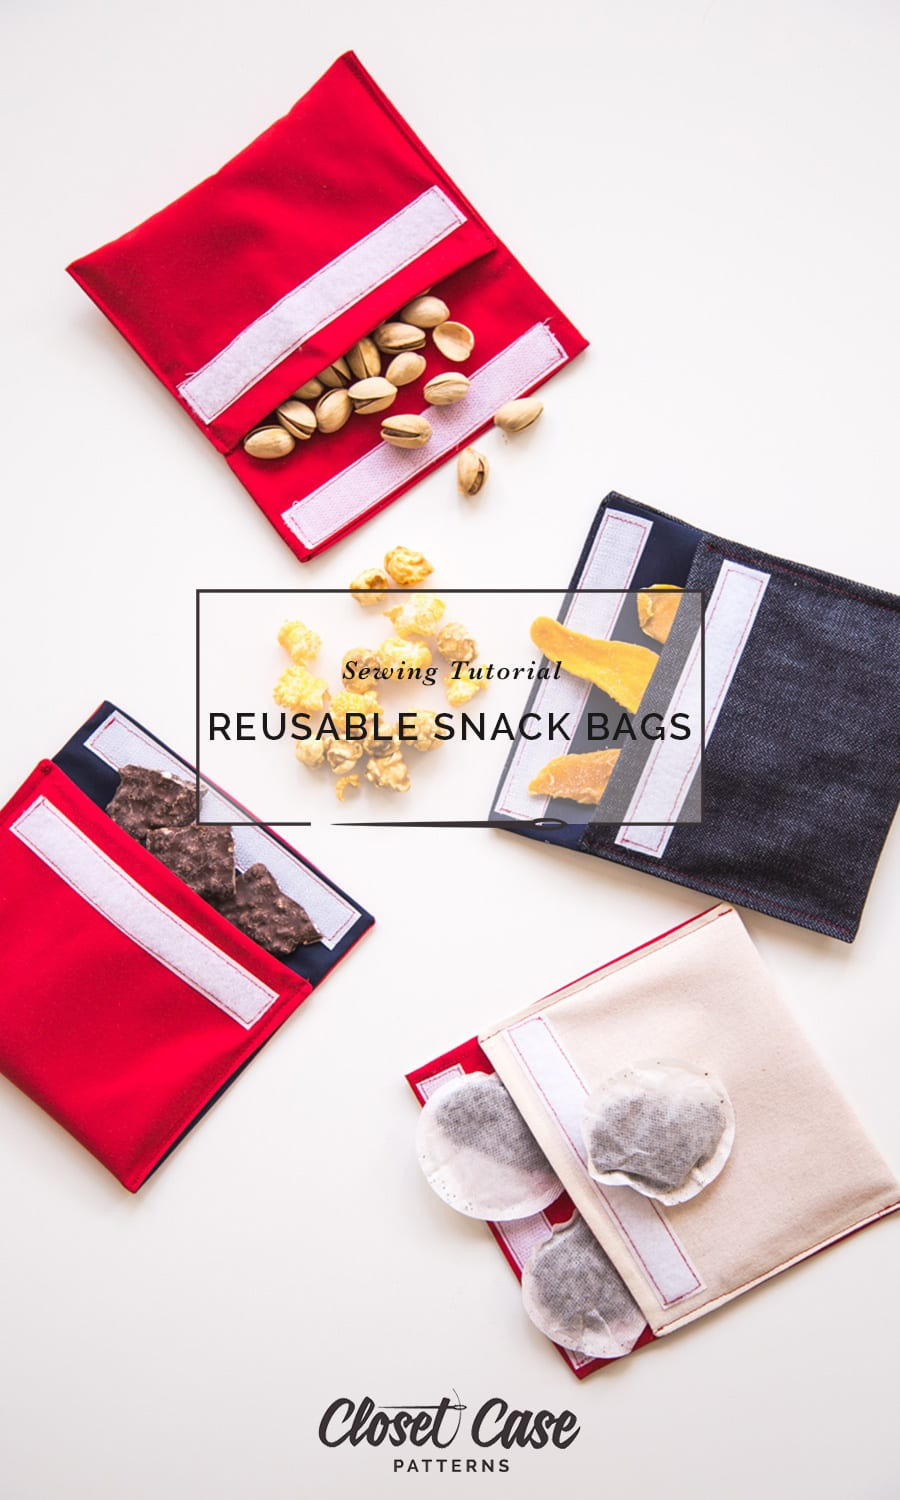 Easy Tutorial: Make Your Own Reusable Snack Bags | Closet Case Patterns